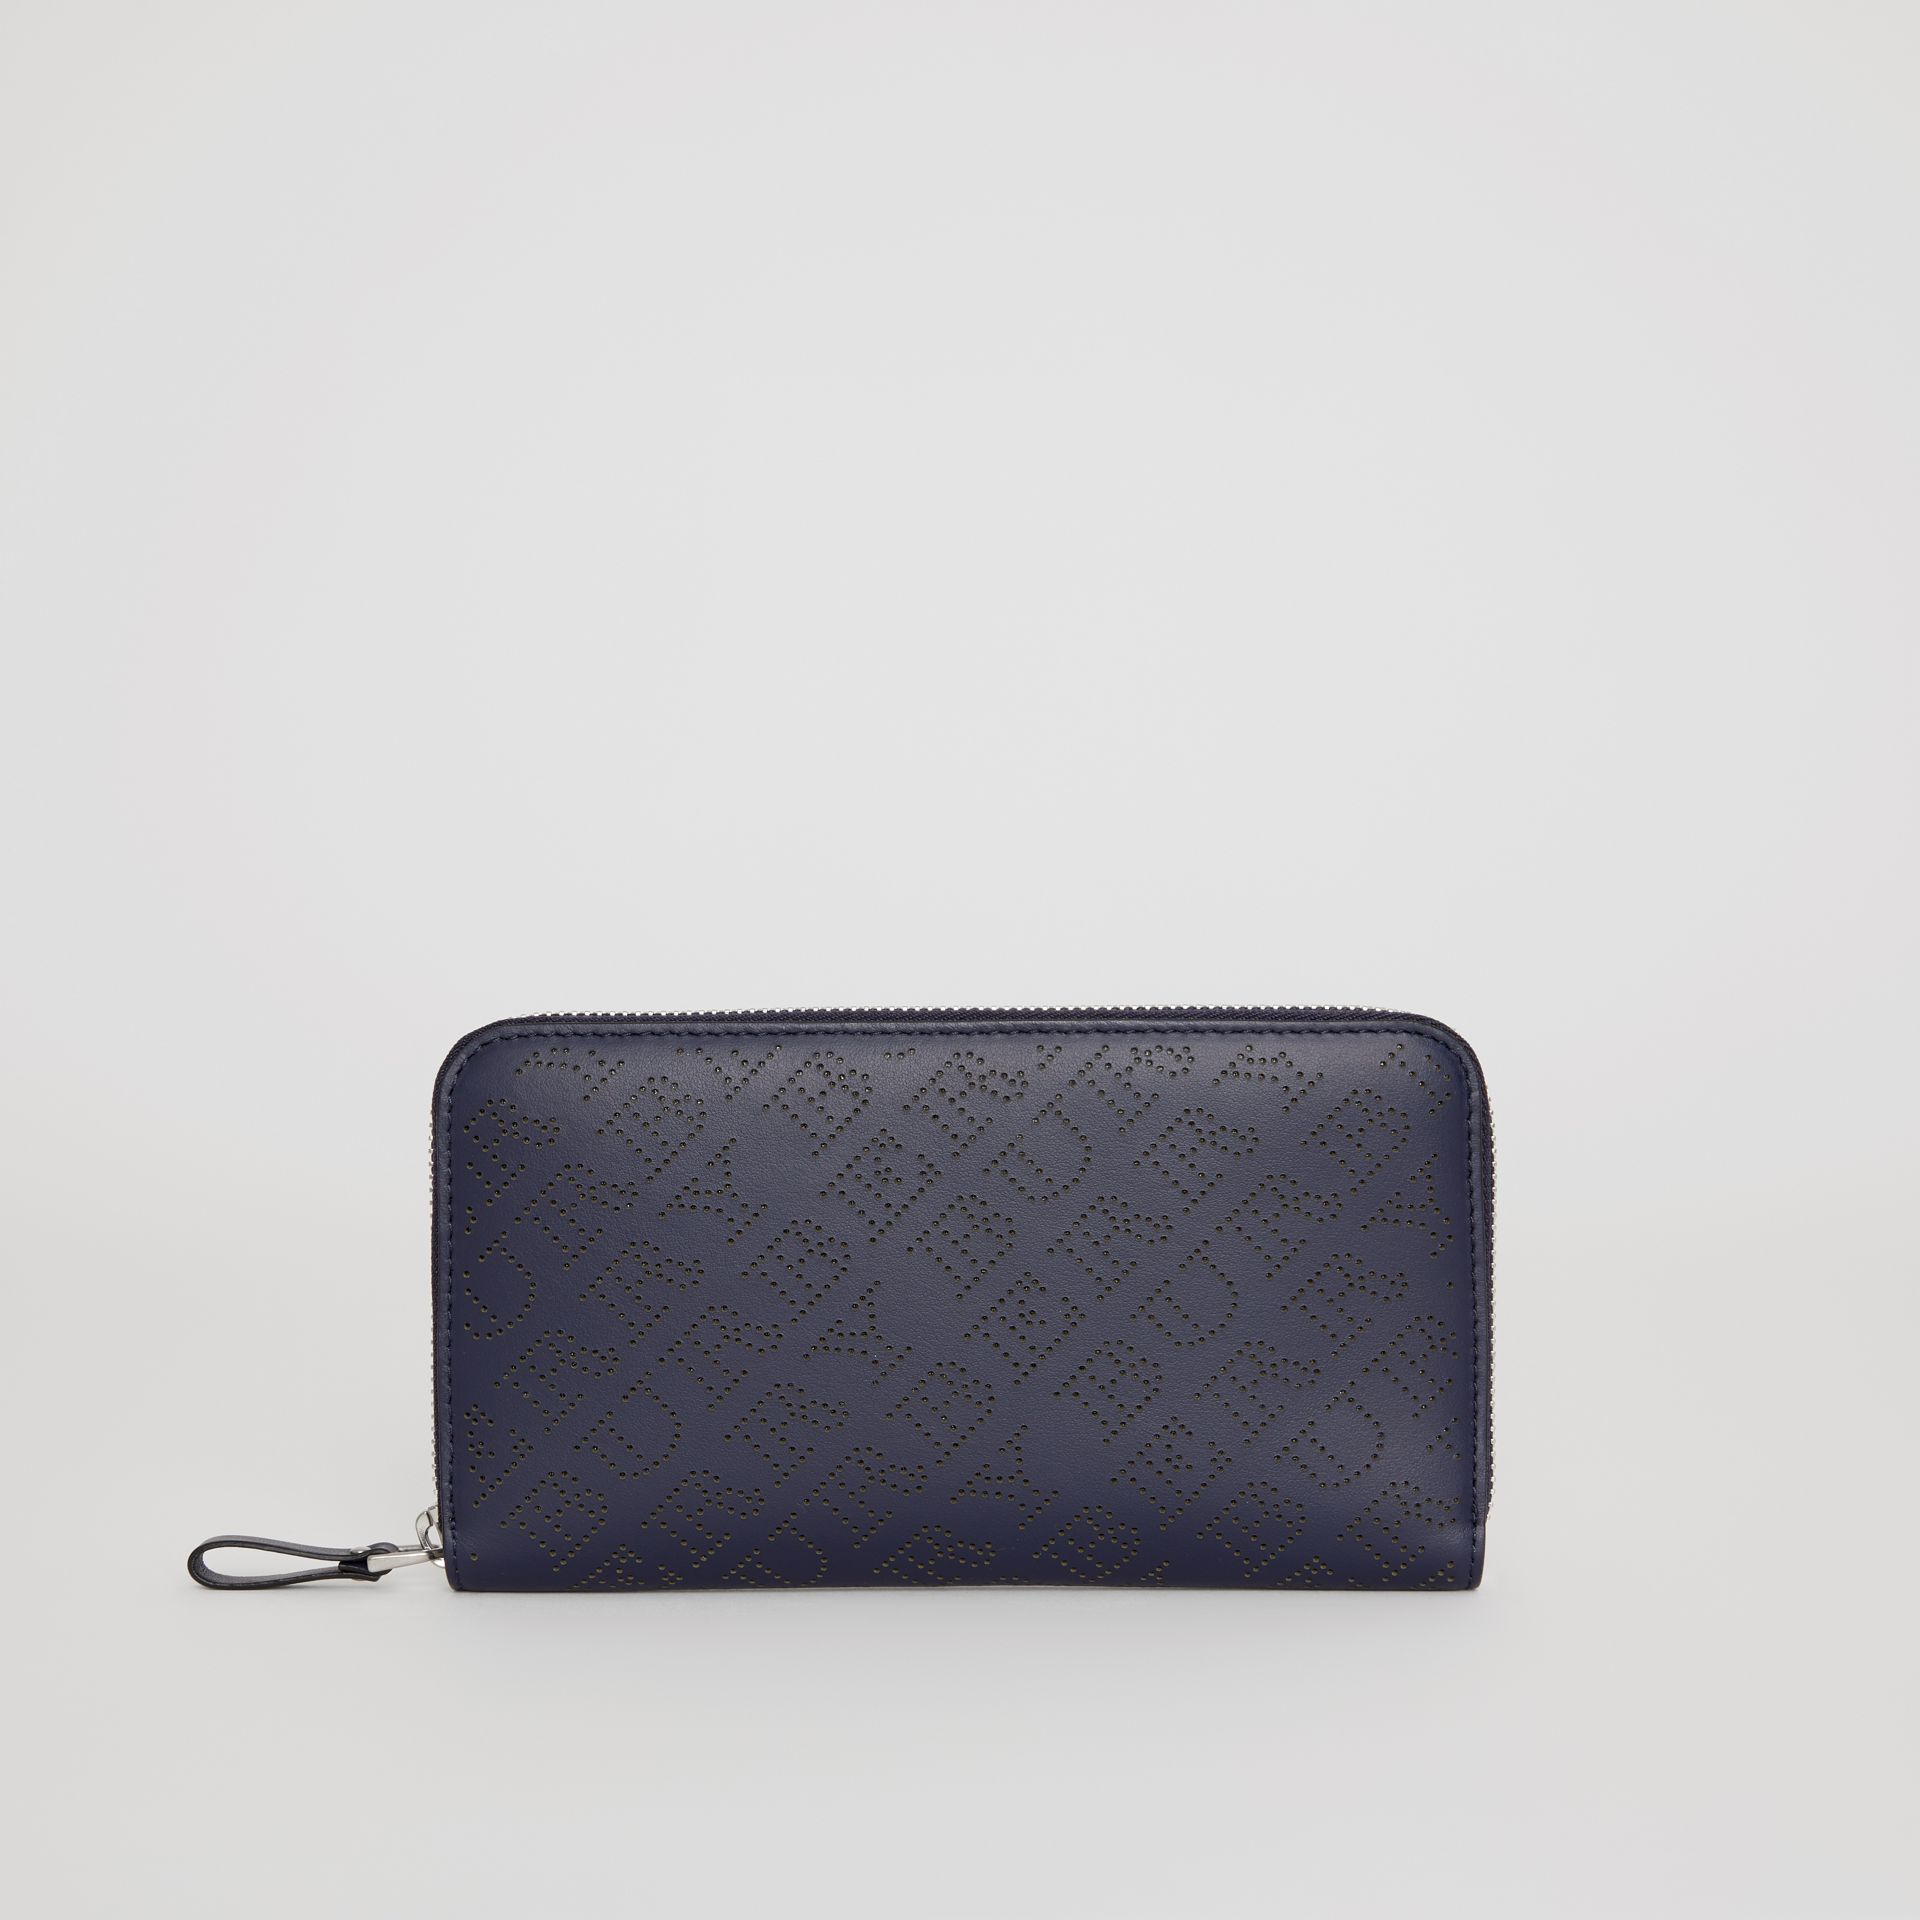 Perforated Leather Ziparound Wallet in Navy - Women | Burberry - gallery image 2